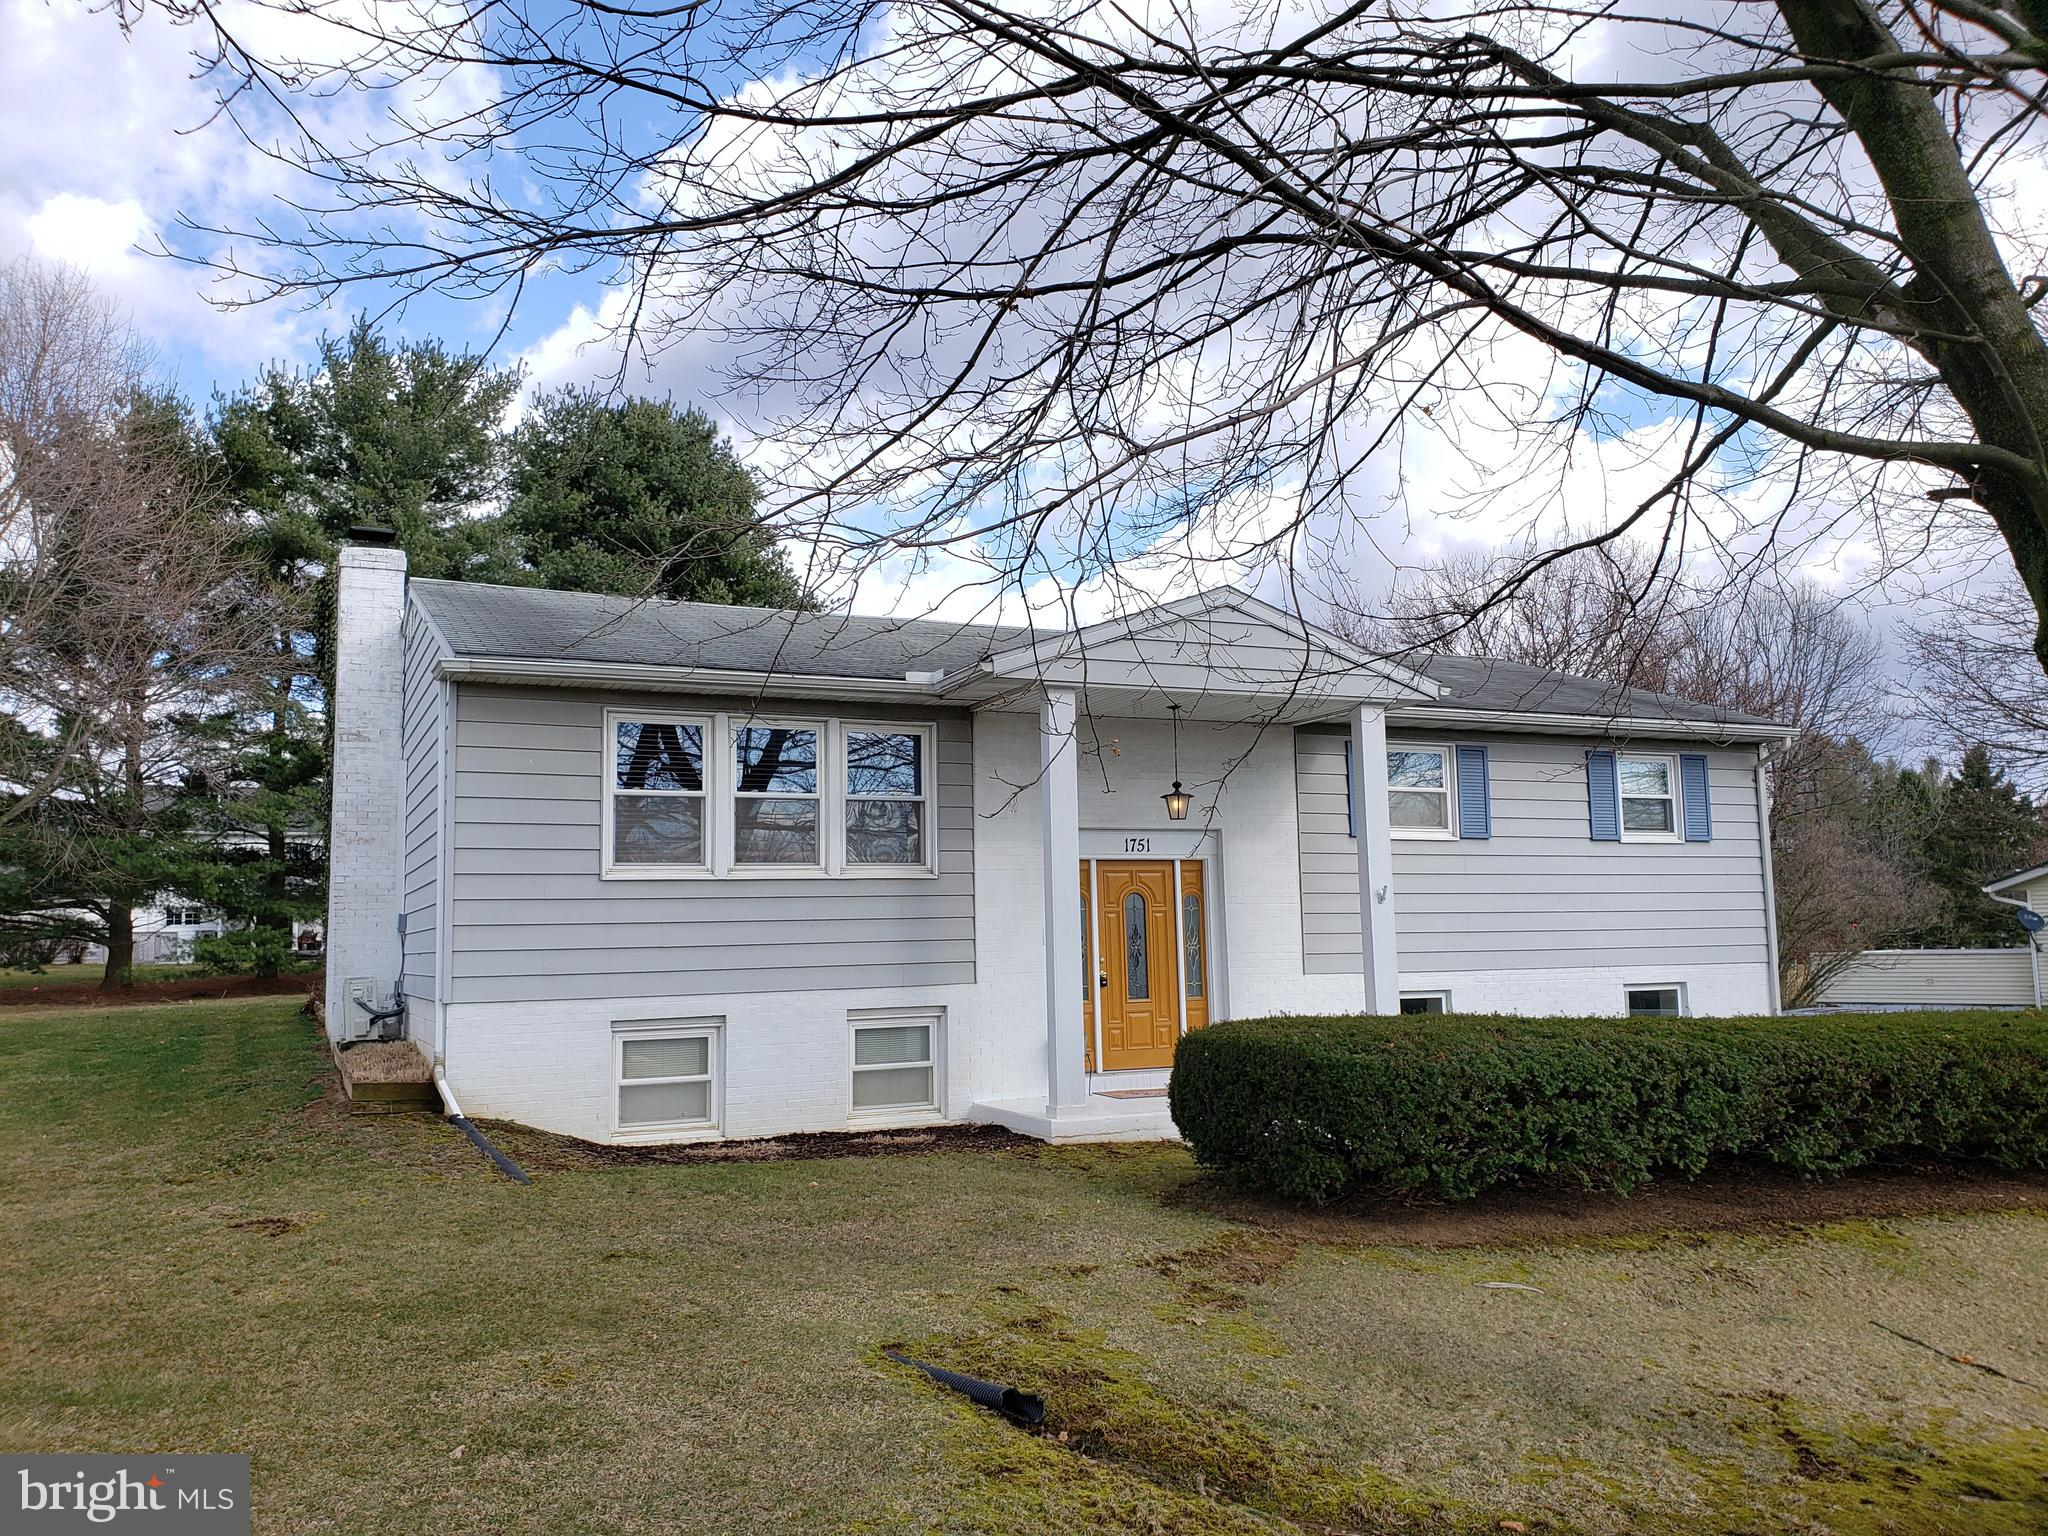 1751 CIRCLEVILLE ROAD, STATE COLLEGE, PA 16803